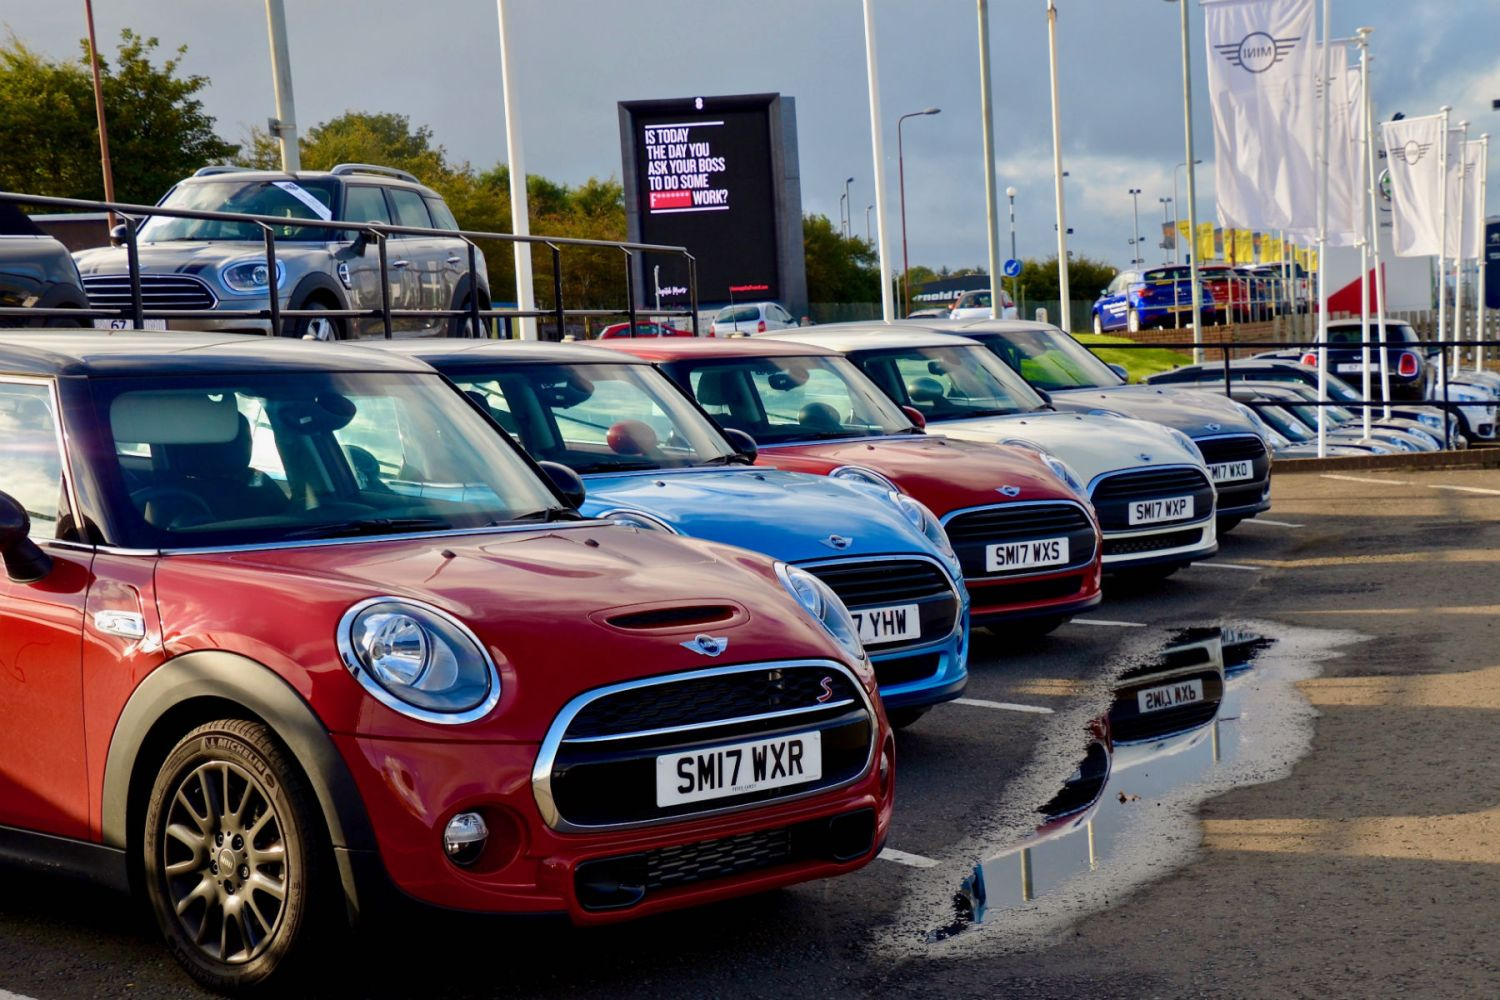 Diesel snubbed as used petrol cars hit record price high